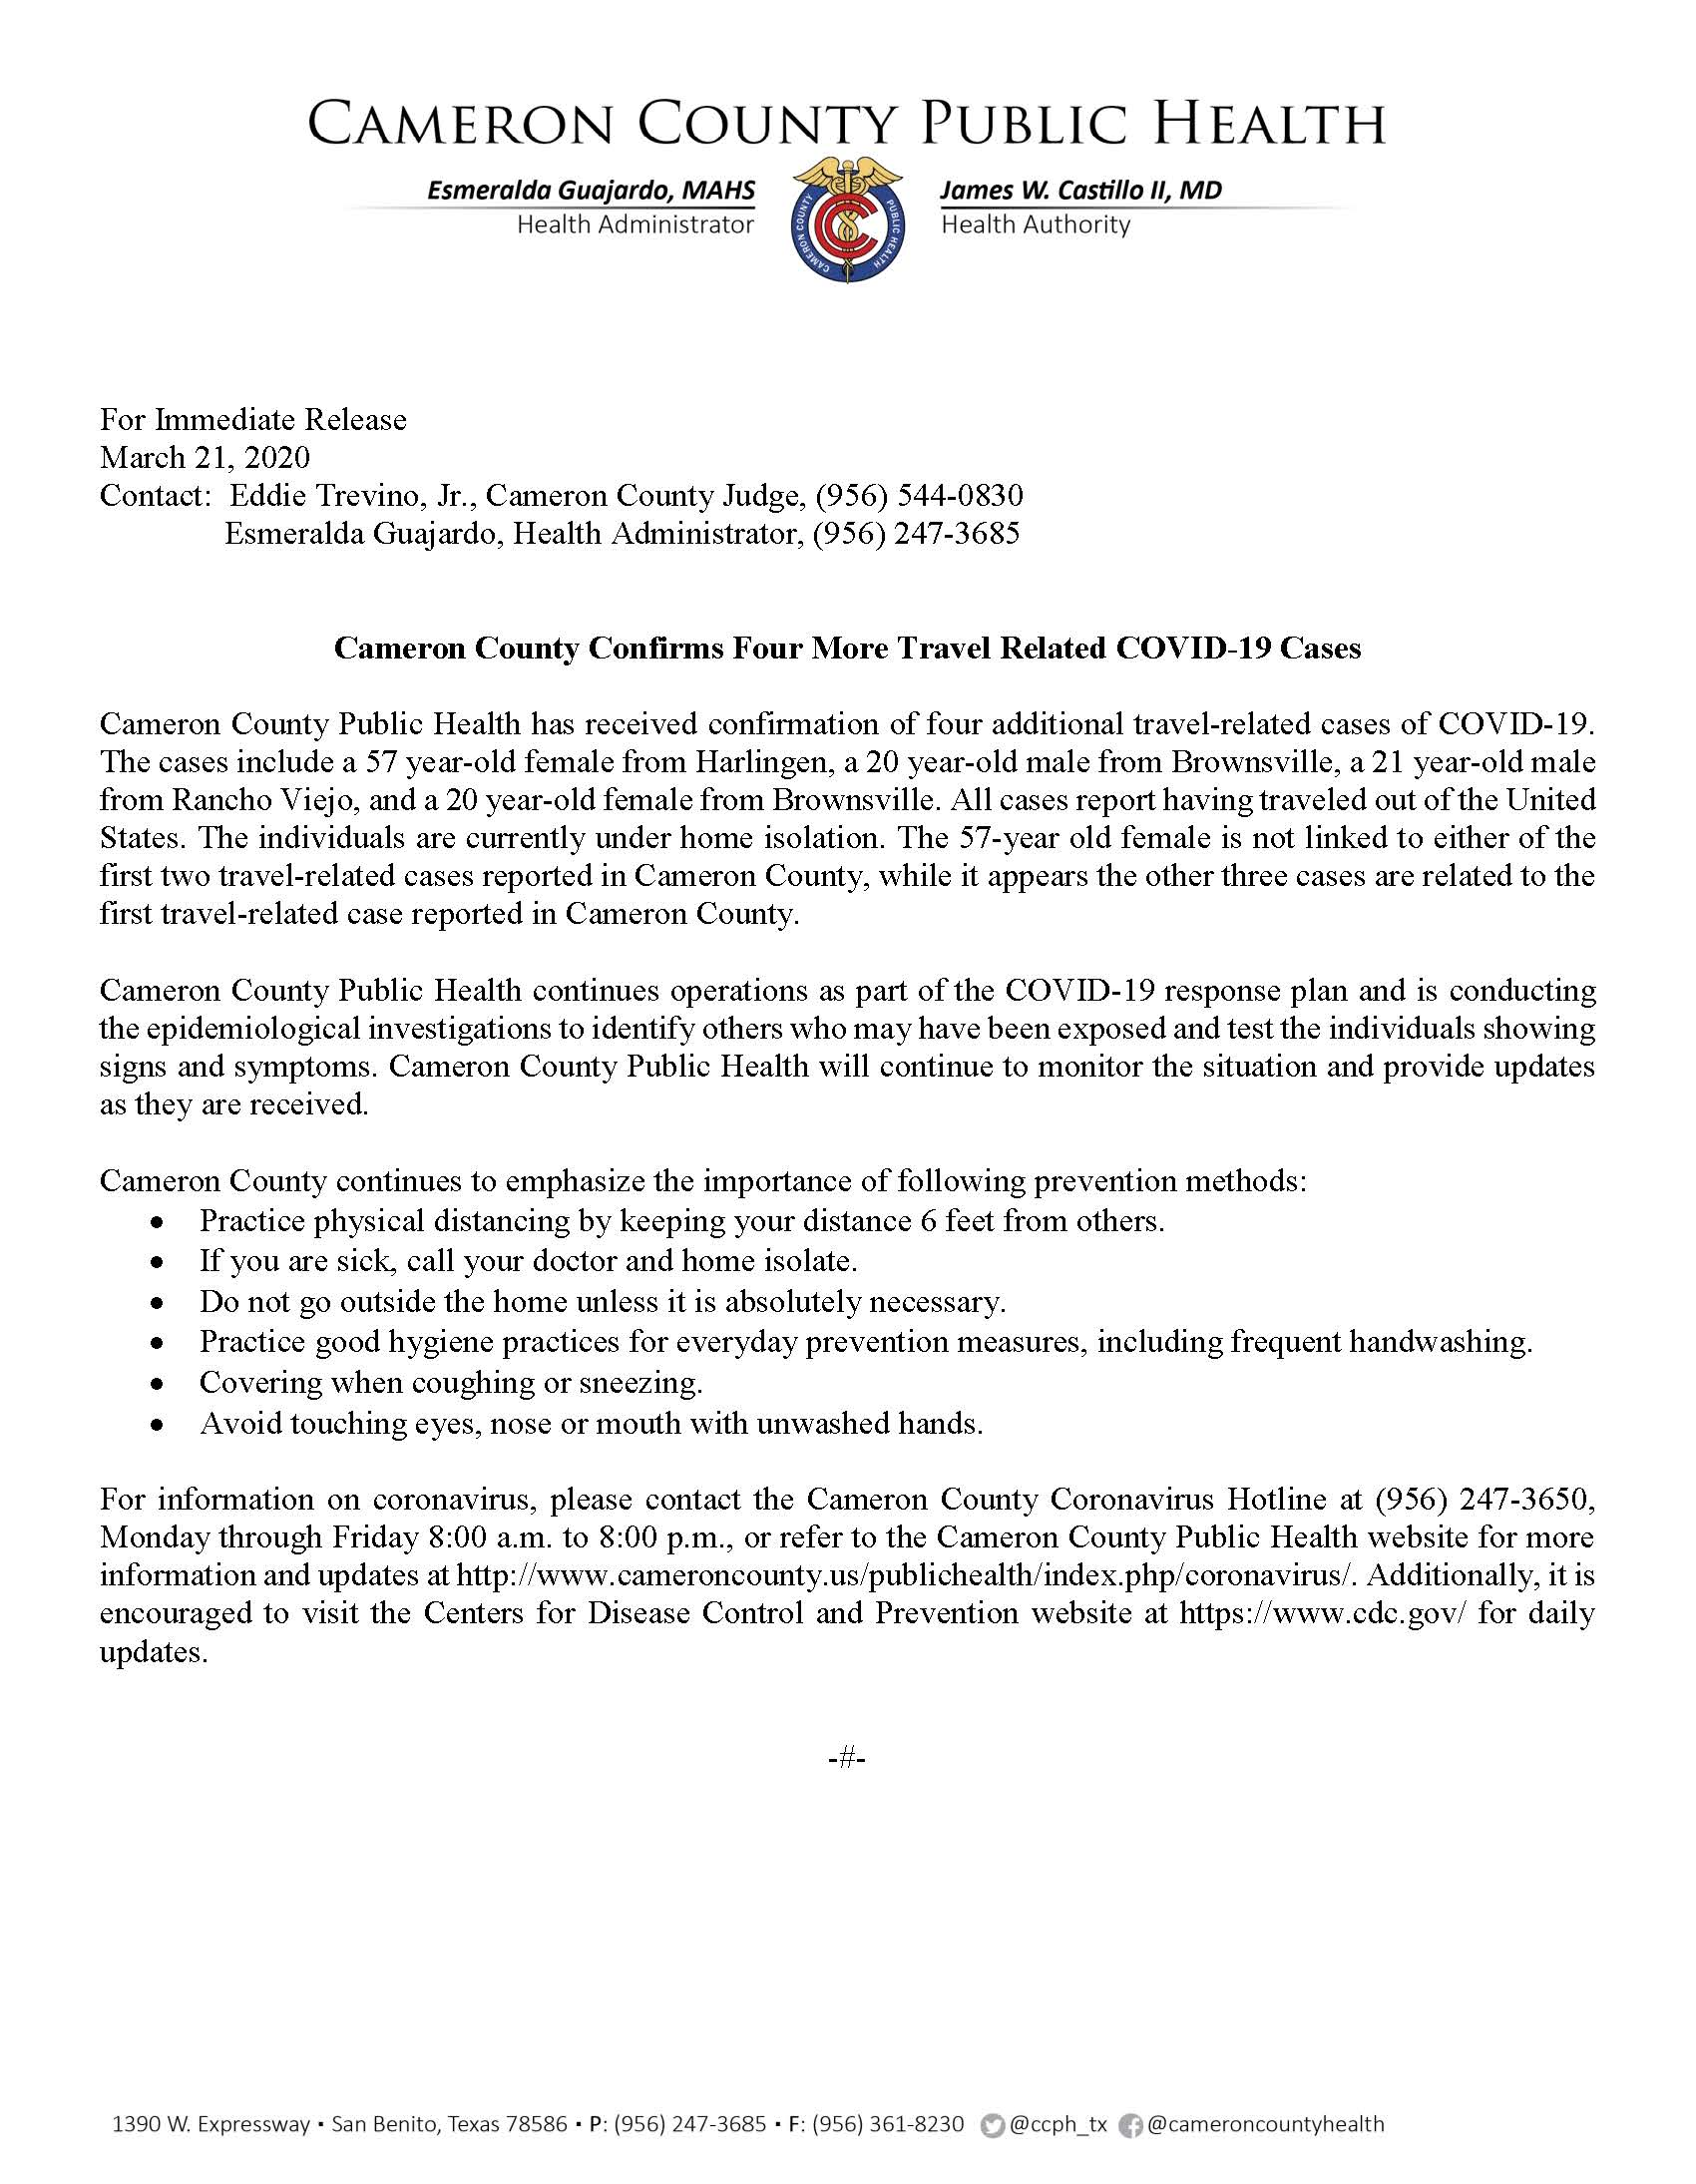 Two Travel Related Cases Of Covid 19 Reported In Harris: Cameron County Confirms Four More Travel Related COVID-19